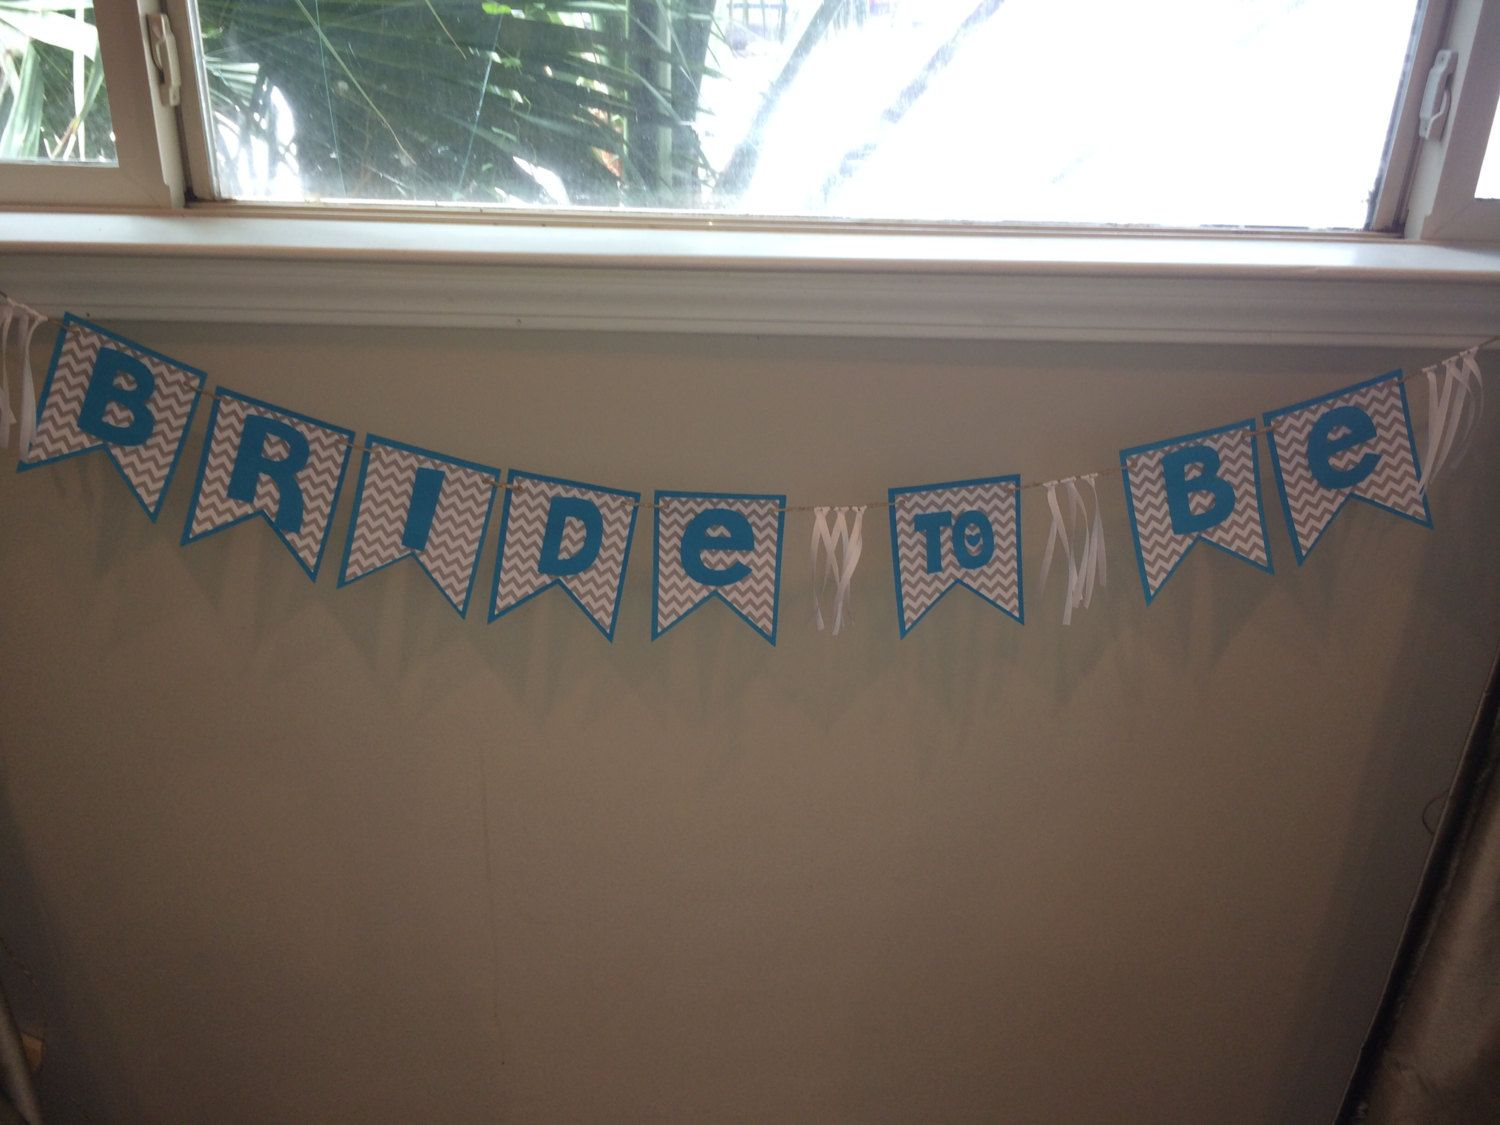 Bride to Be Wedding Shower Banner- Teal and Gray by TookiesLLC on Etsy